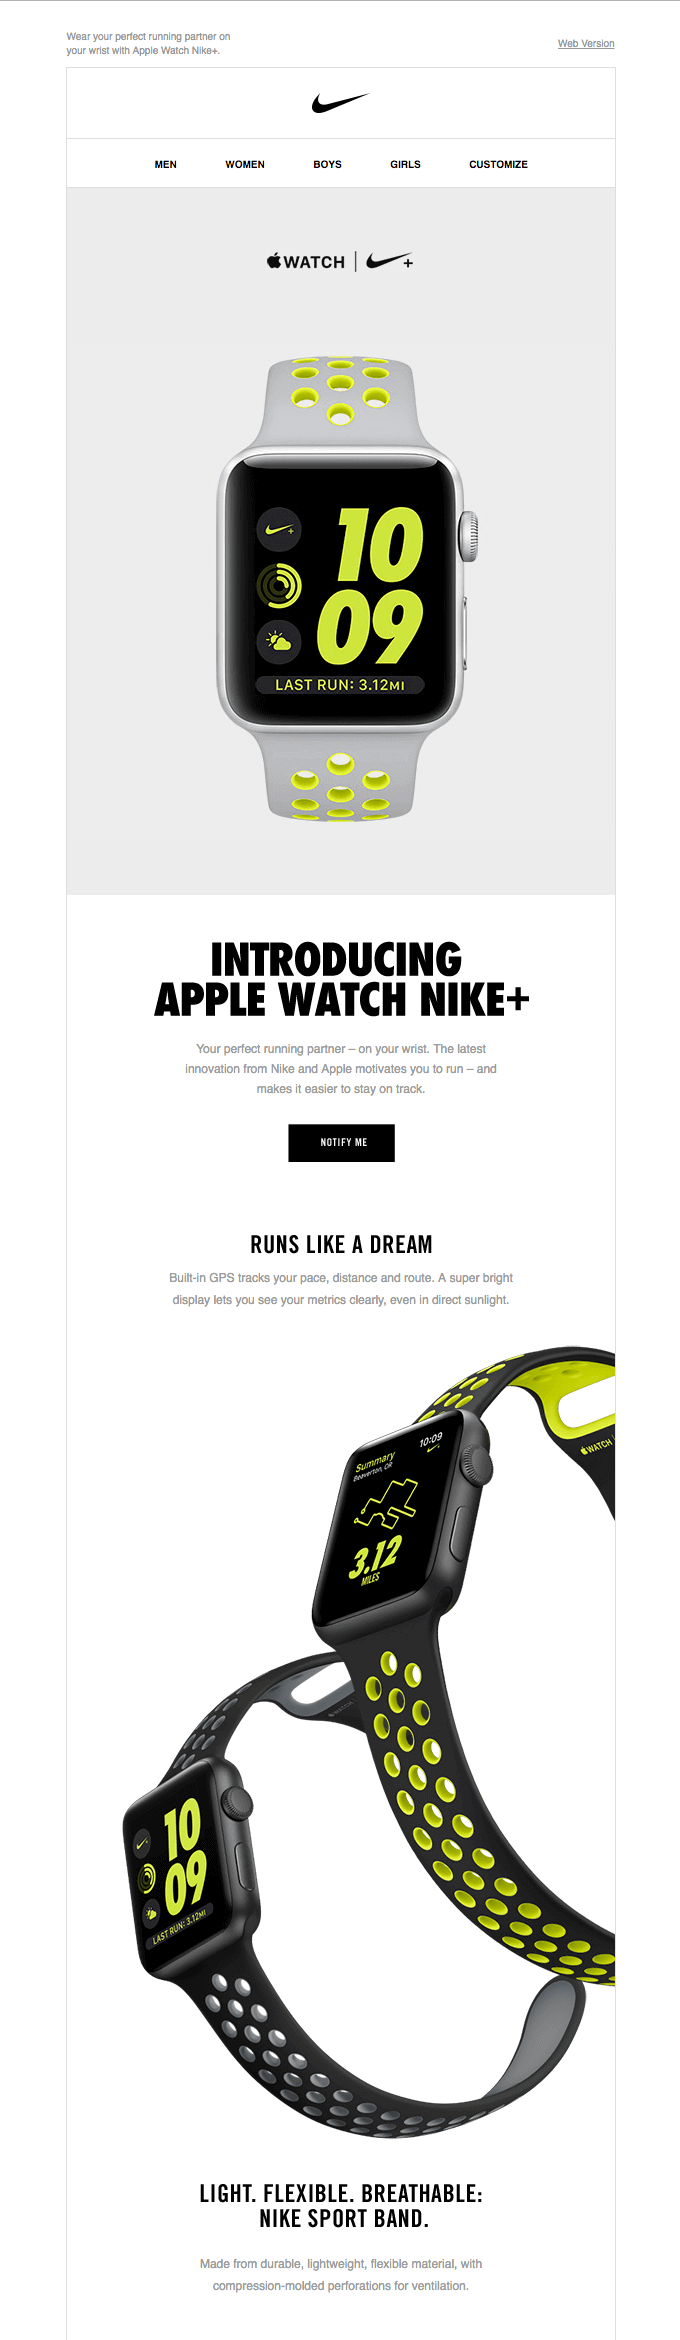 Introducing Apple Watch Nike+ product launch email sample